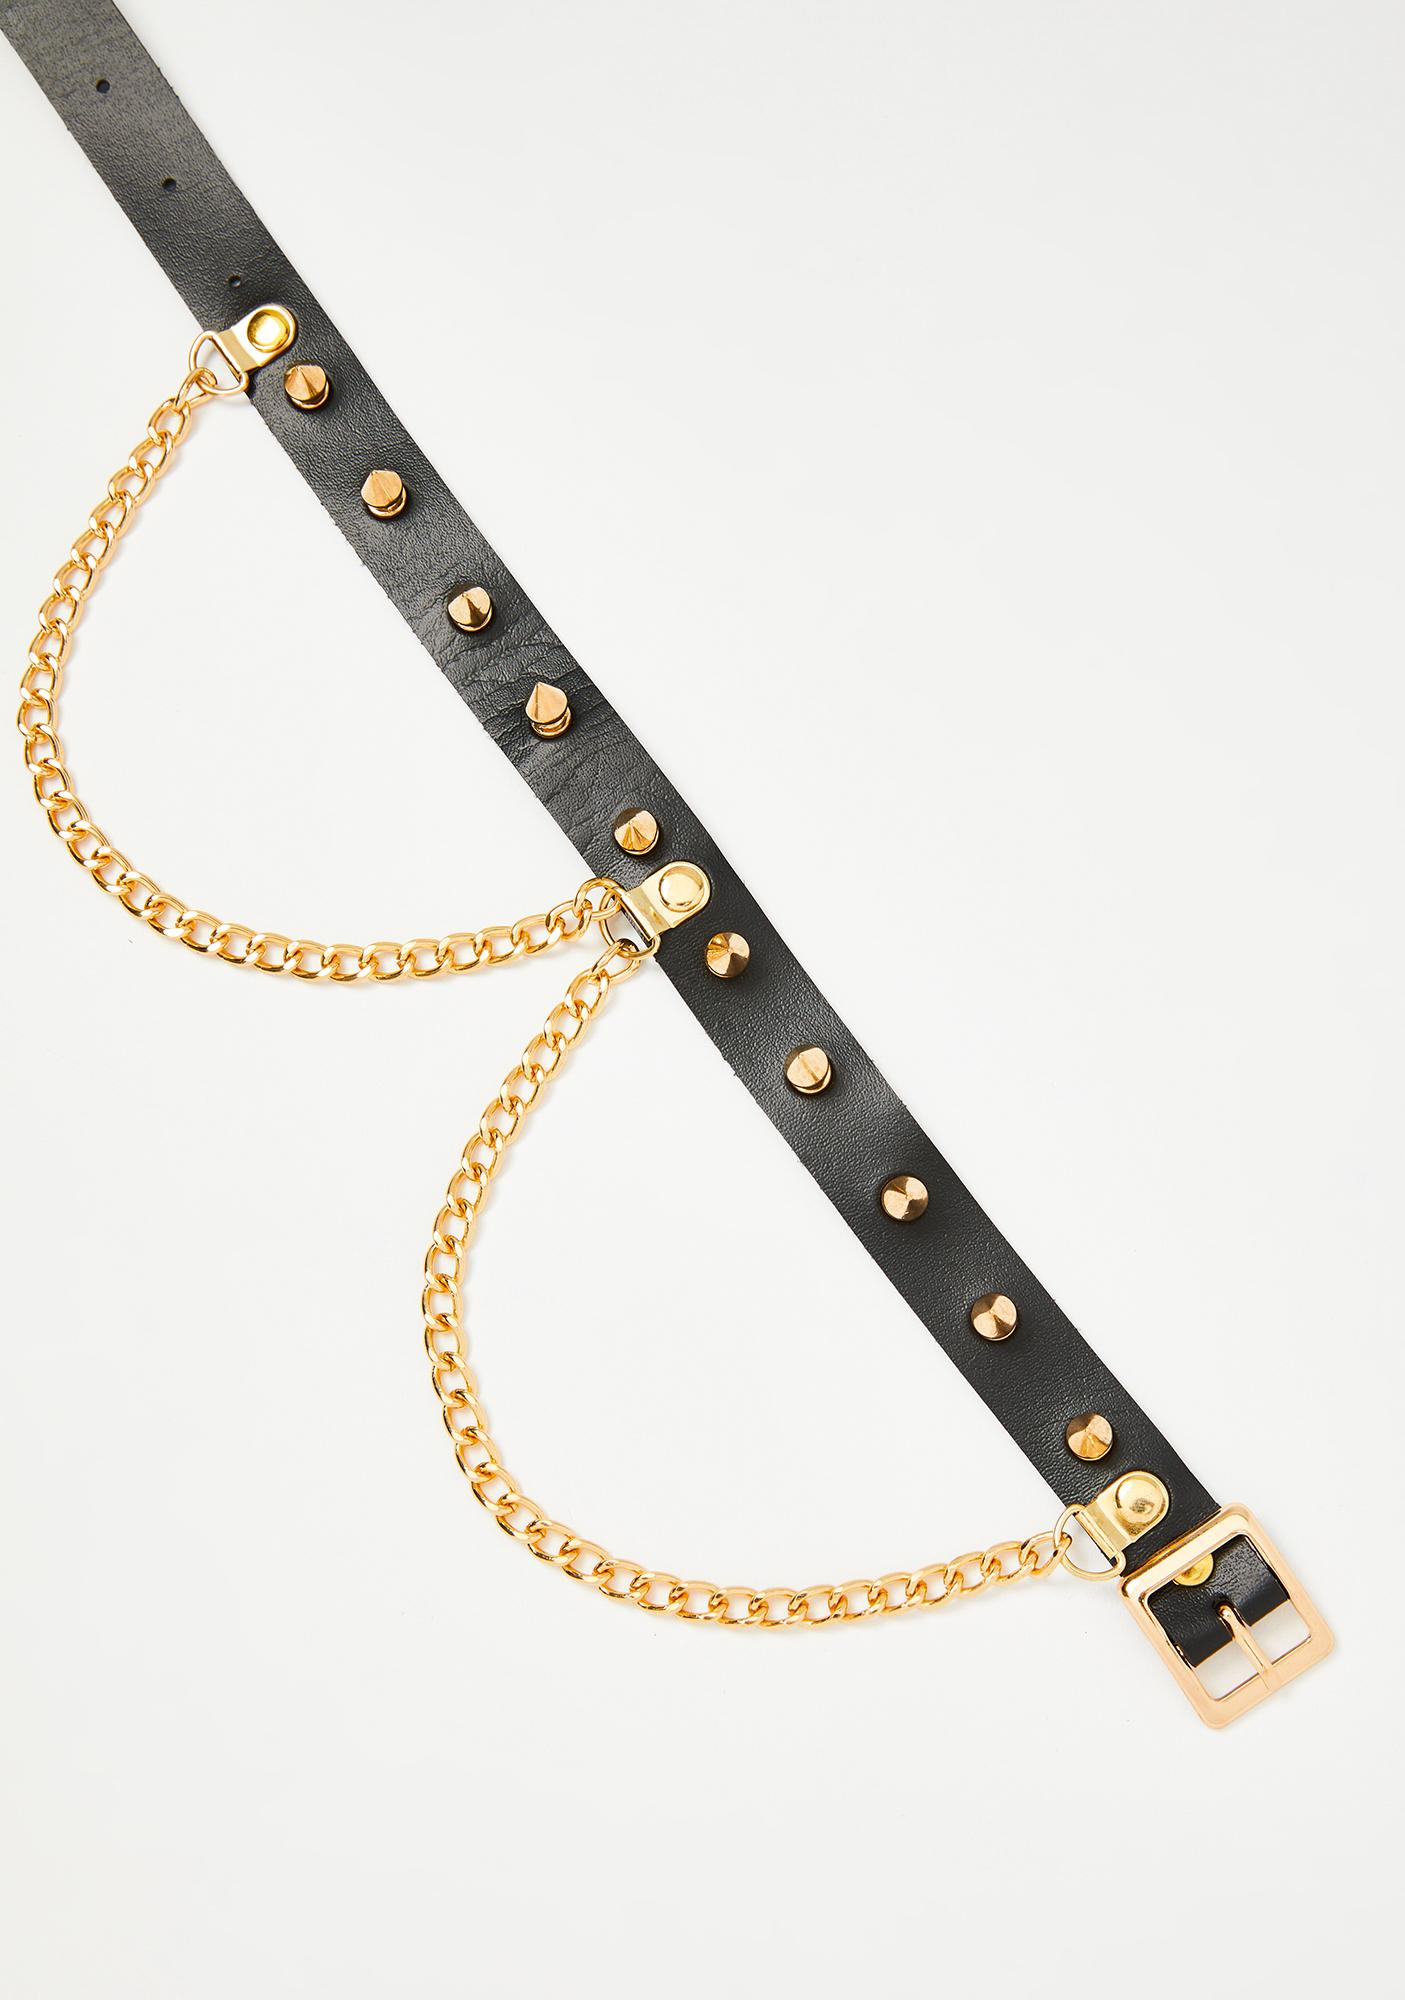 Royally Bewitched Spiked Choker